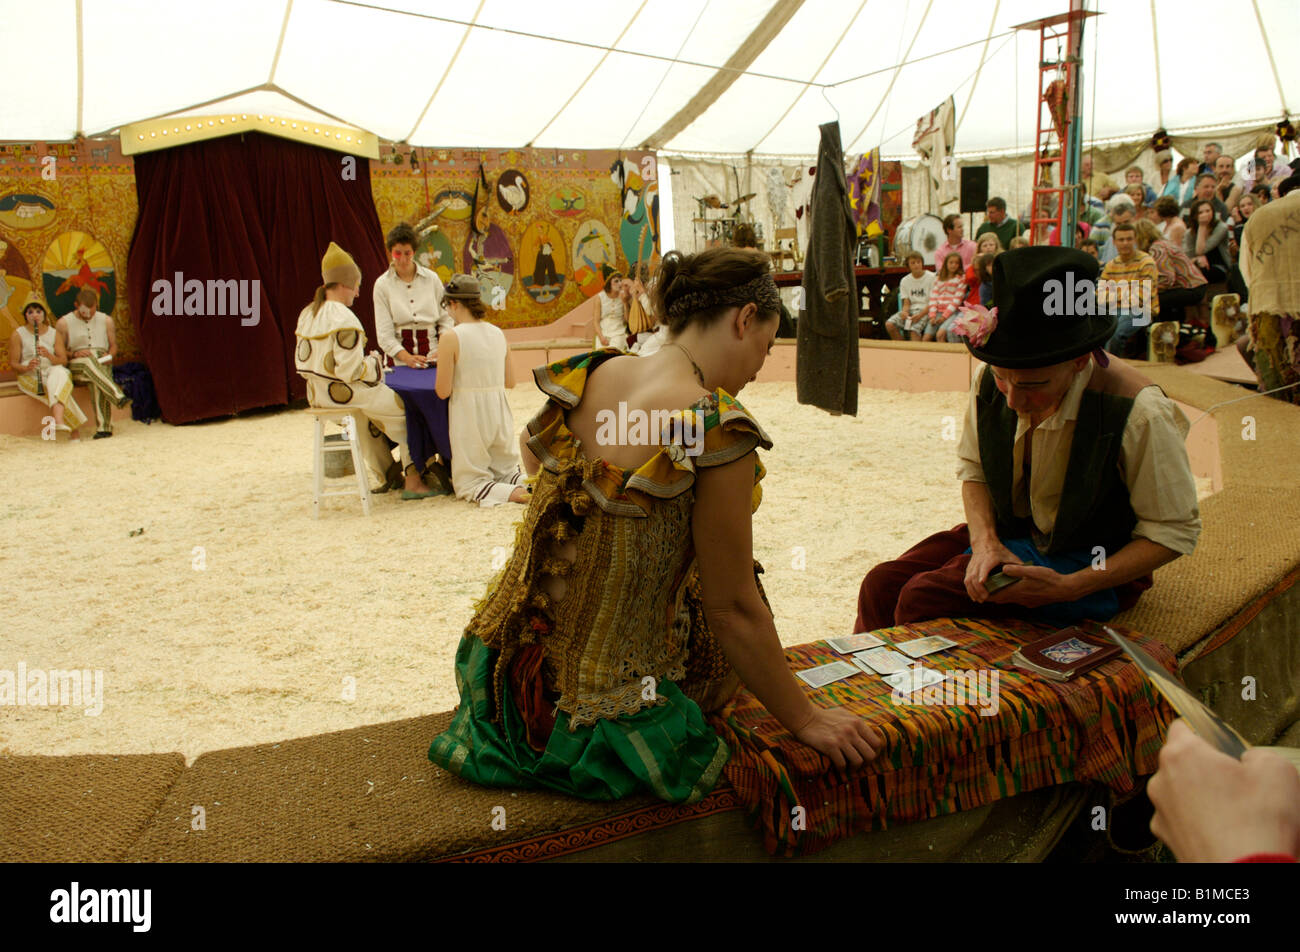 Performers at Giffords Circus - Stock Image